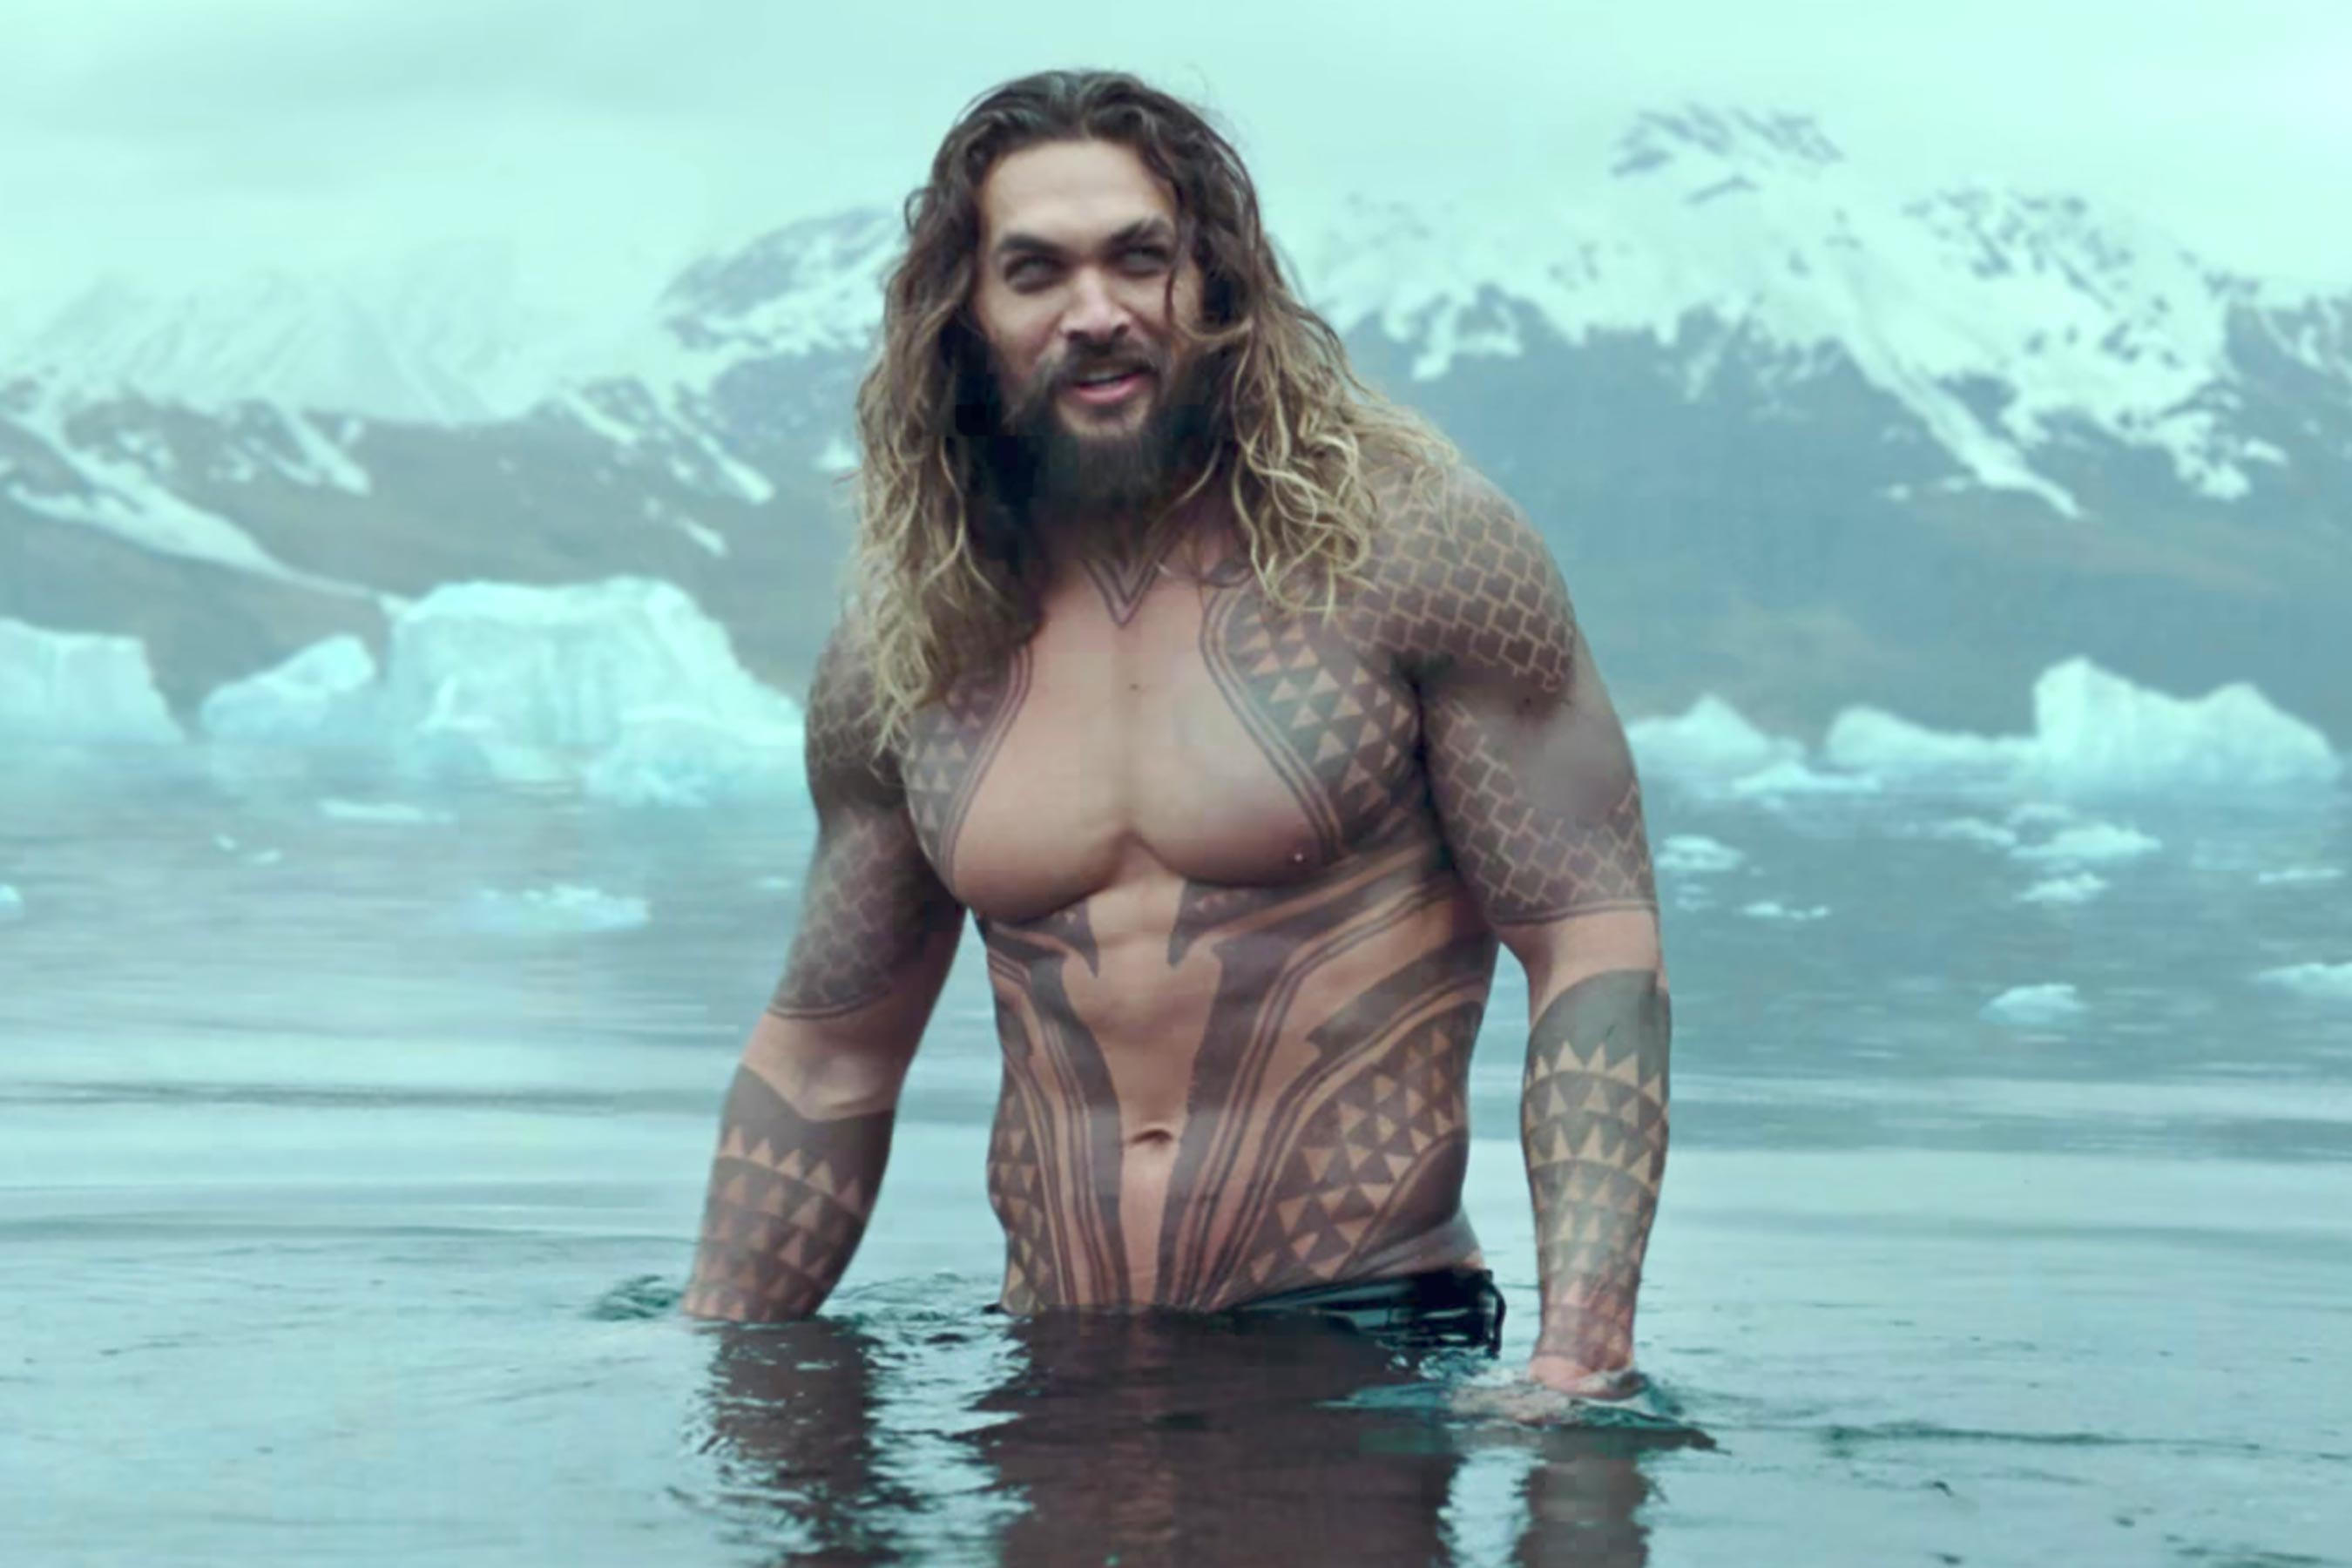 Jason Momoa Teases Aquaman Trailer Ahead of SDCC Reveal